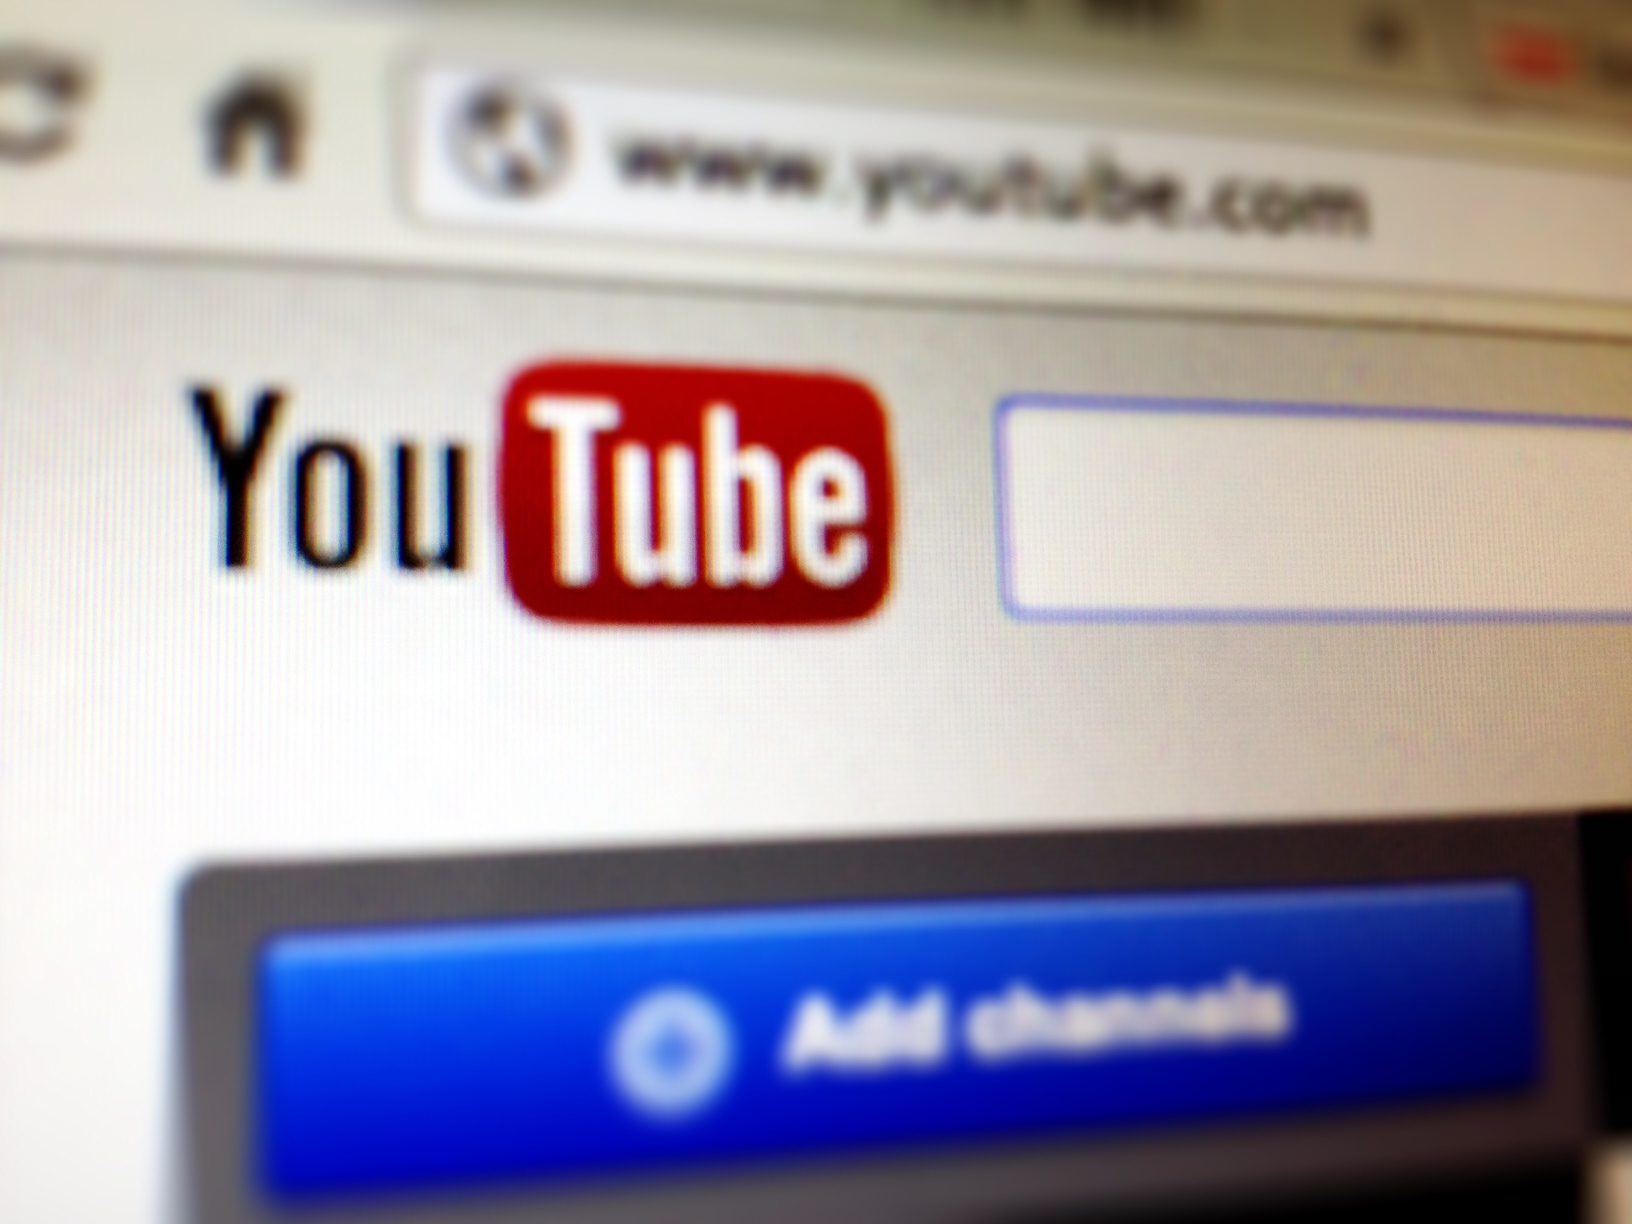 YouTube's VP of Marketing talks about the future of advertising on the site